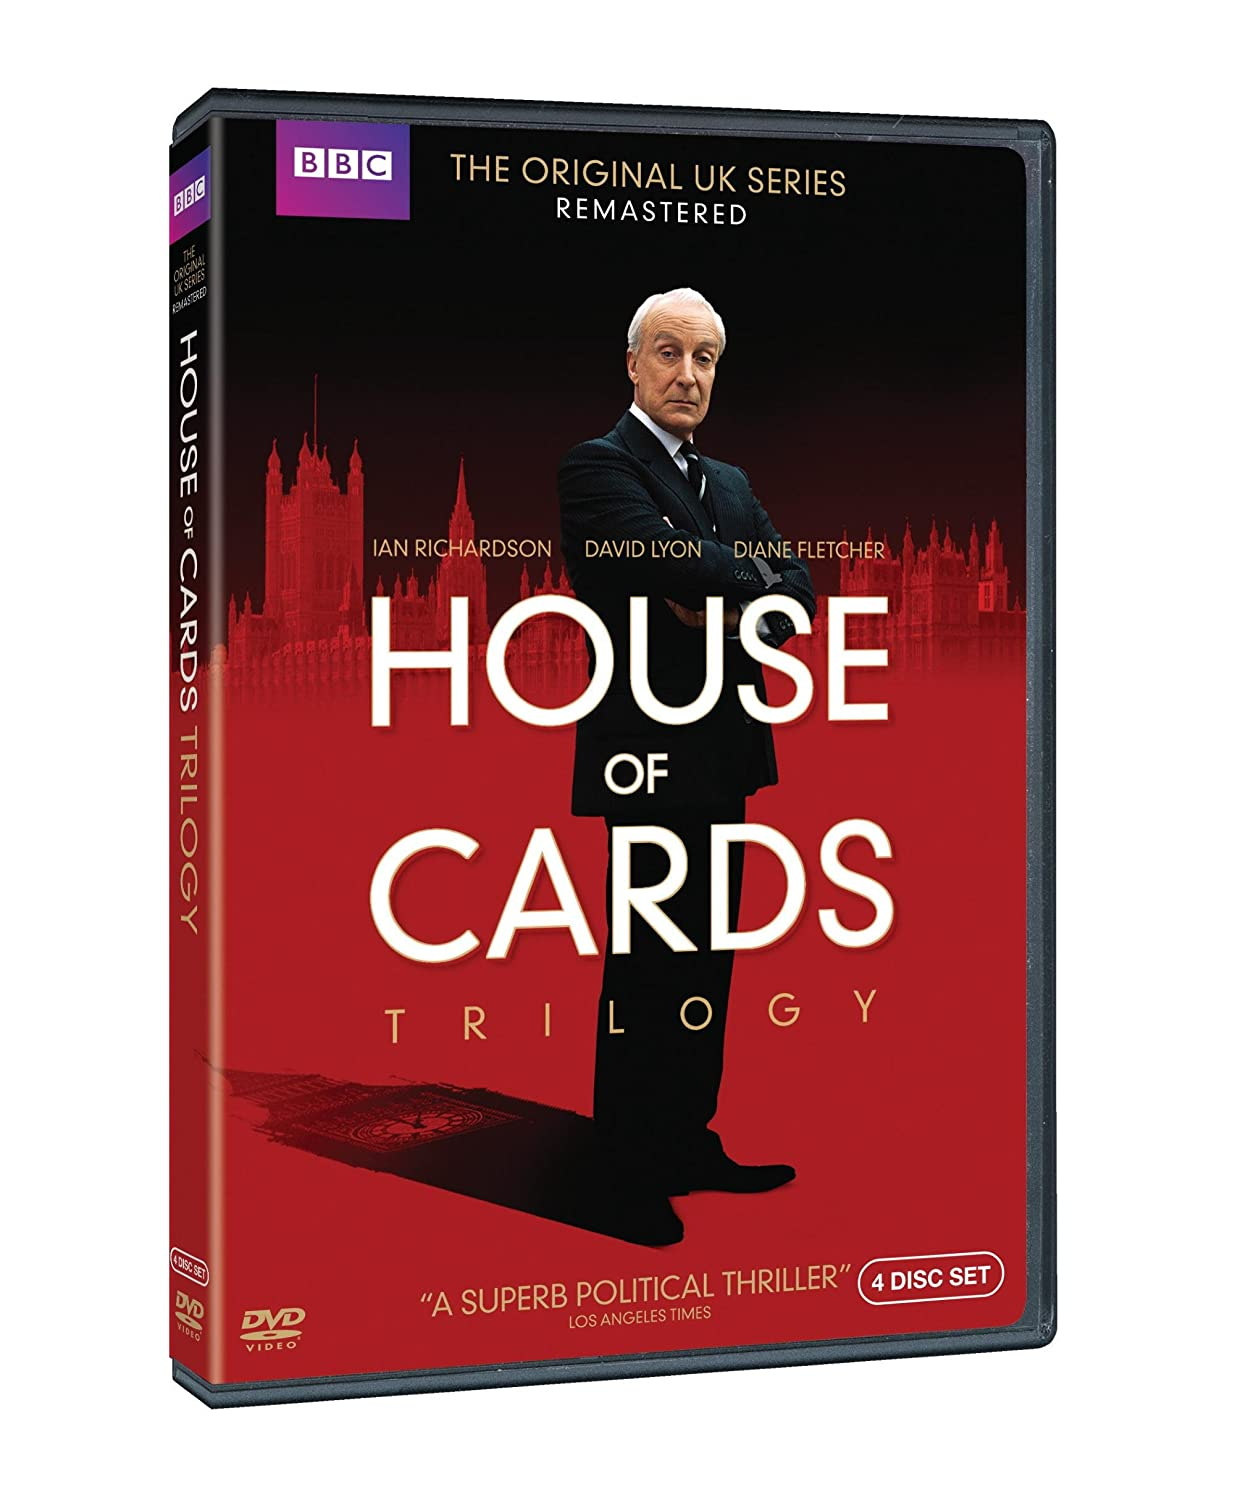 House of Cards Trilogy:The Original UK Series Remastered